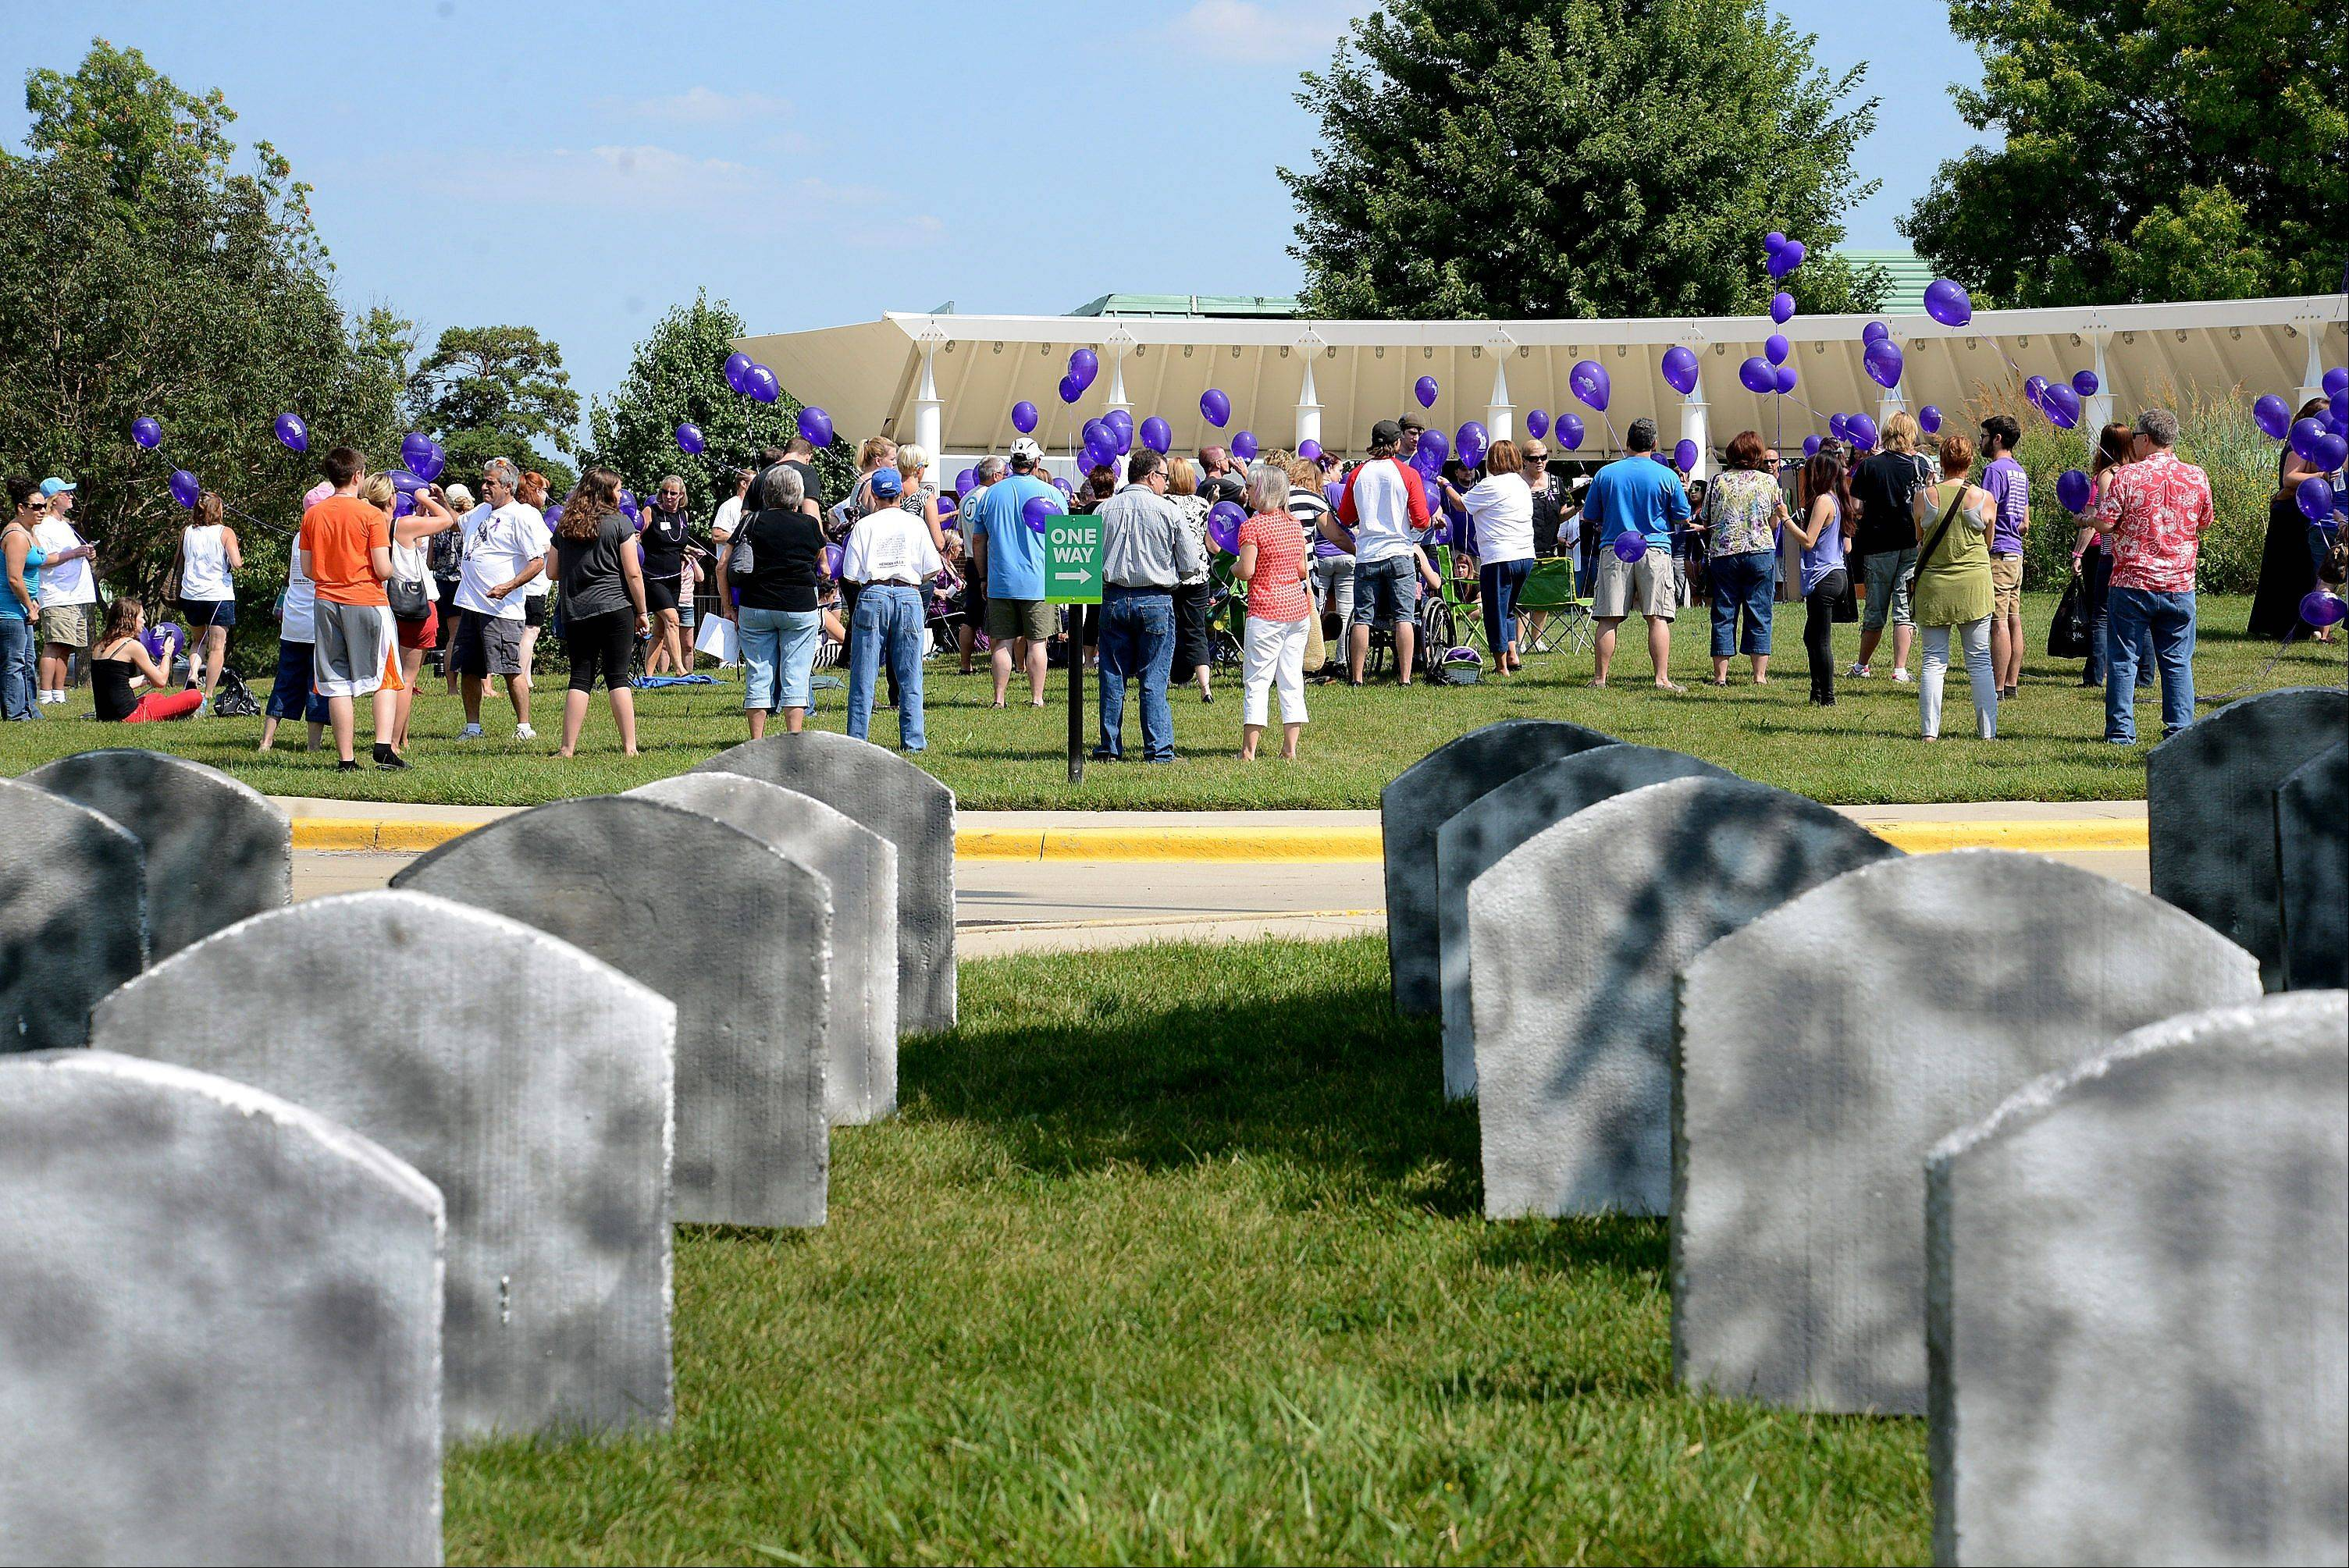 To illustrate the number of people who die from drug overdoses each day, organizers of Saturday's kickoff event for International Overdose Awareness week created a makeshift cemetery with 100 tombstones outside the event.